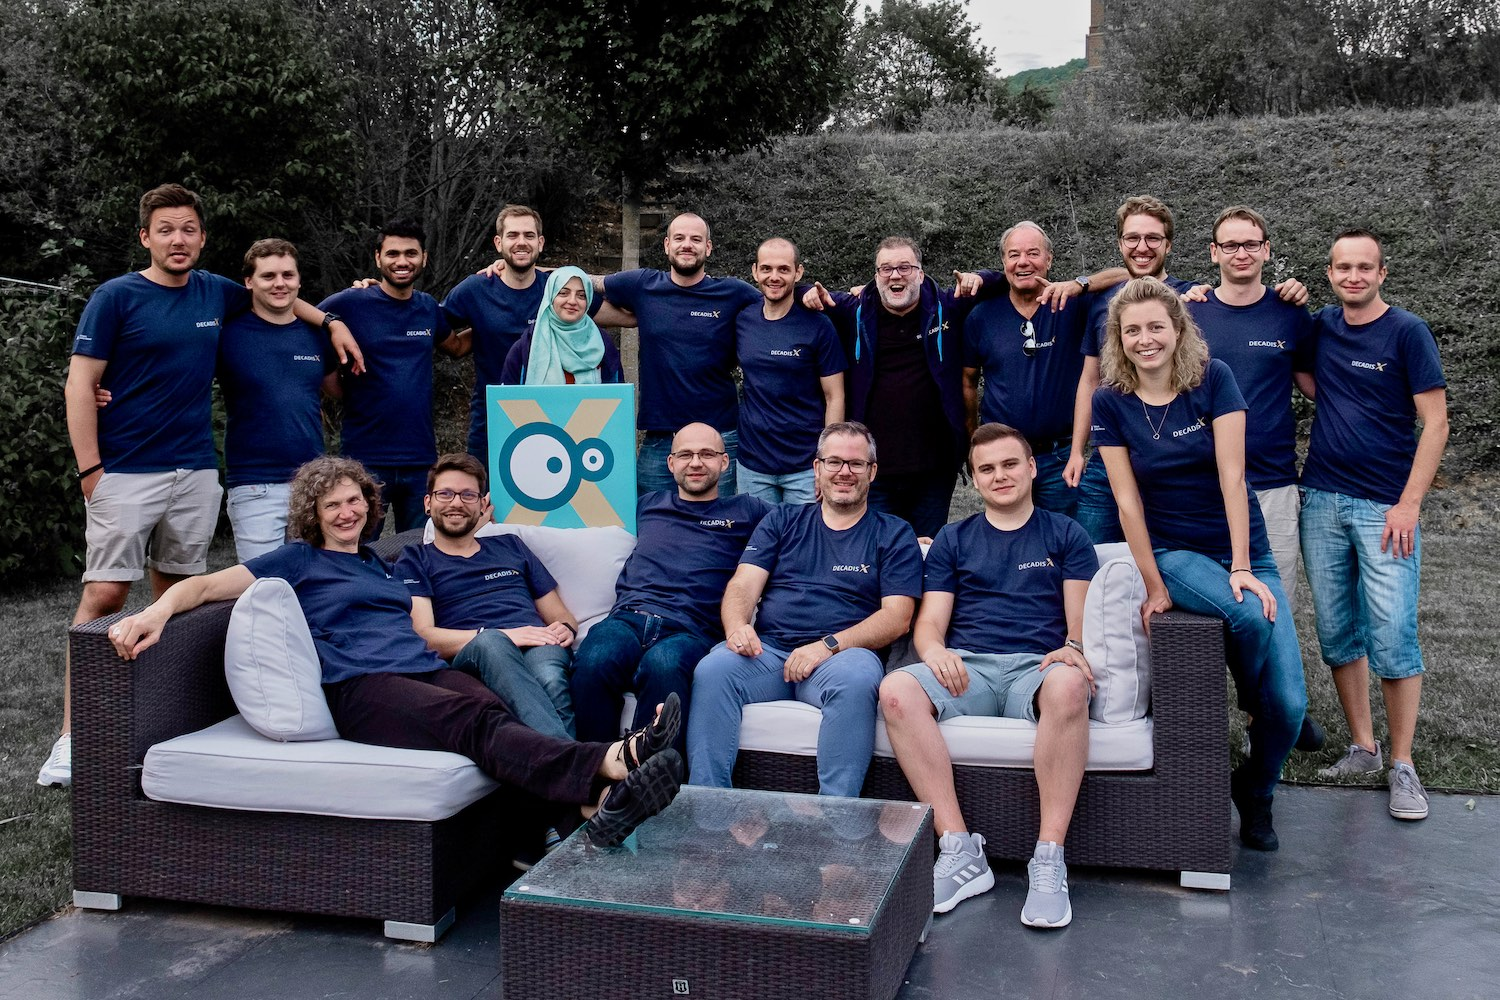 The Atlassian Solutions team